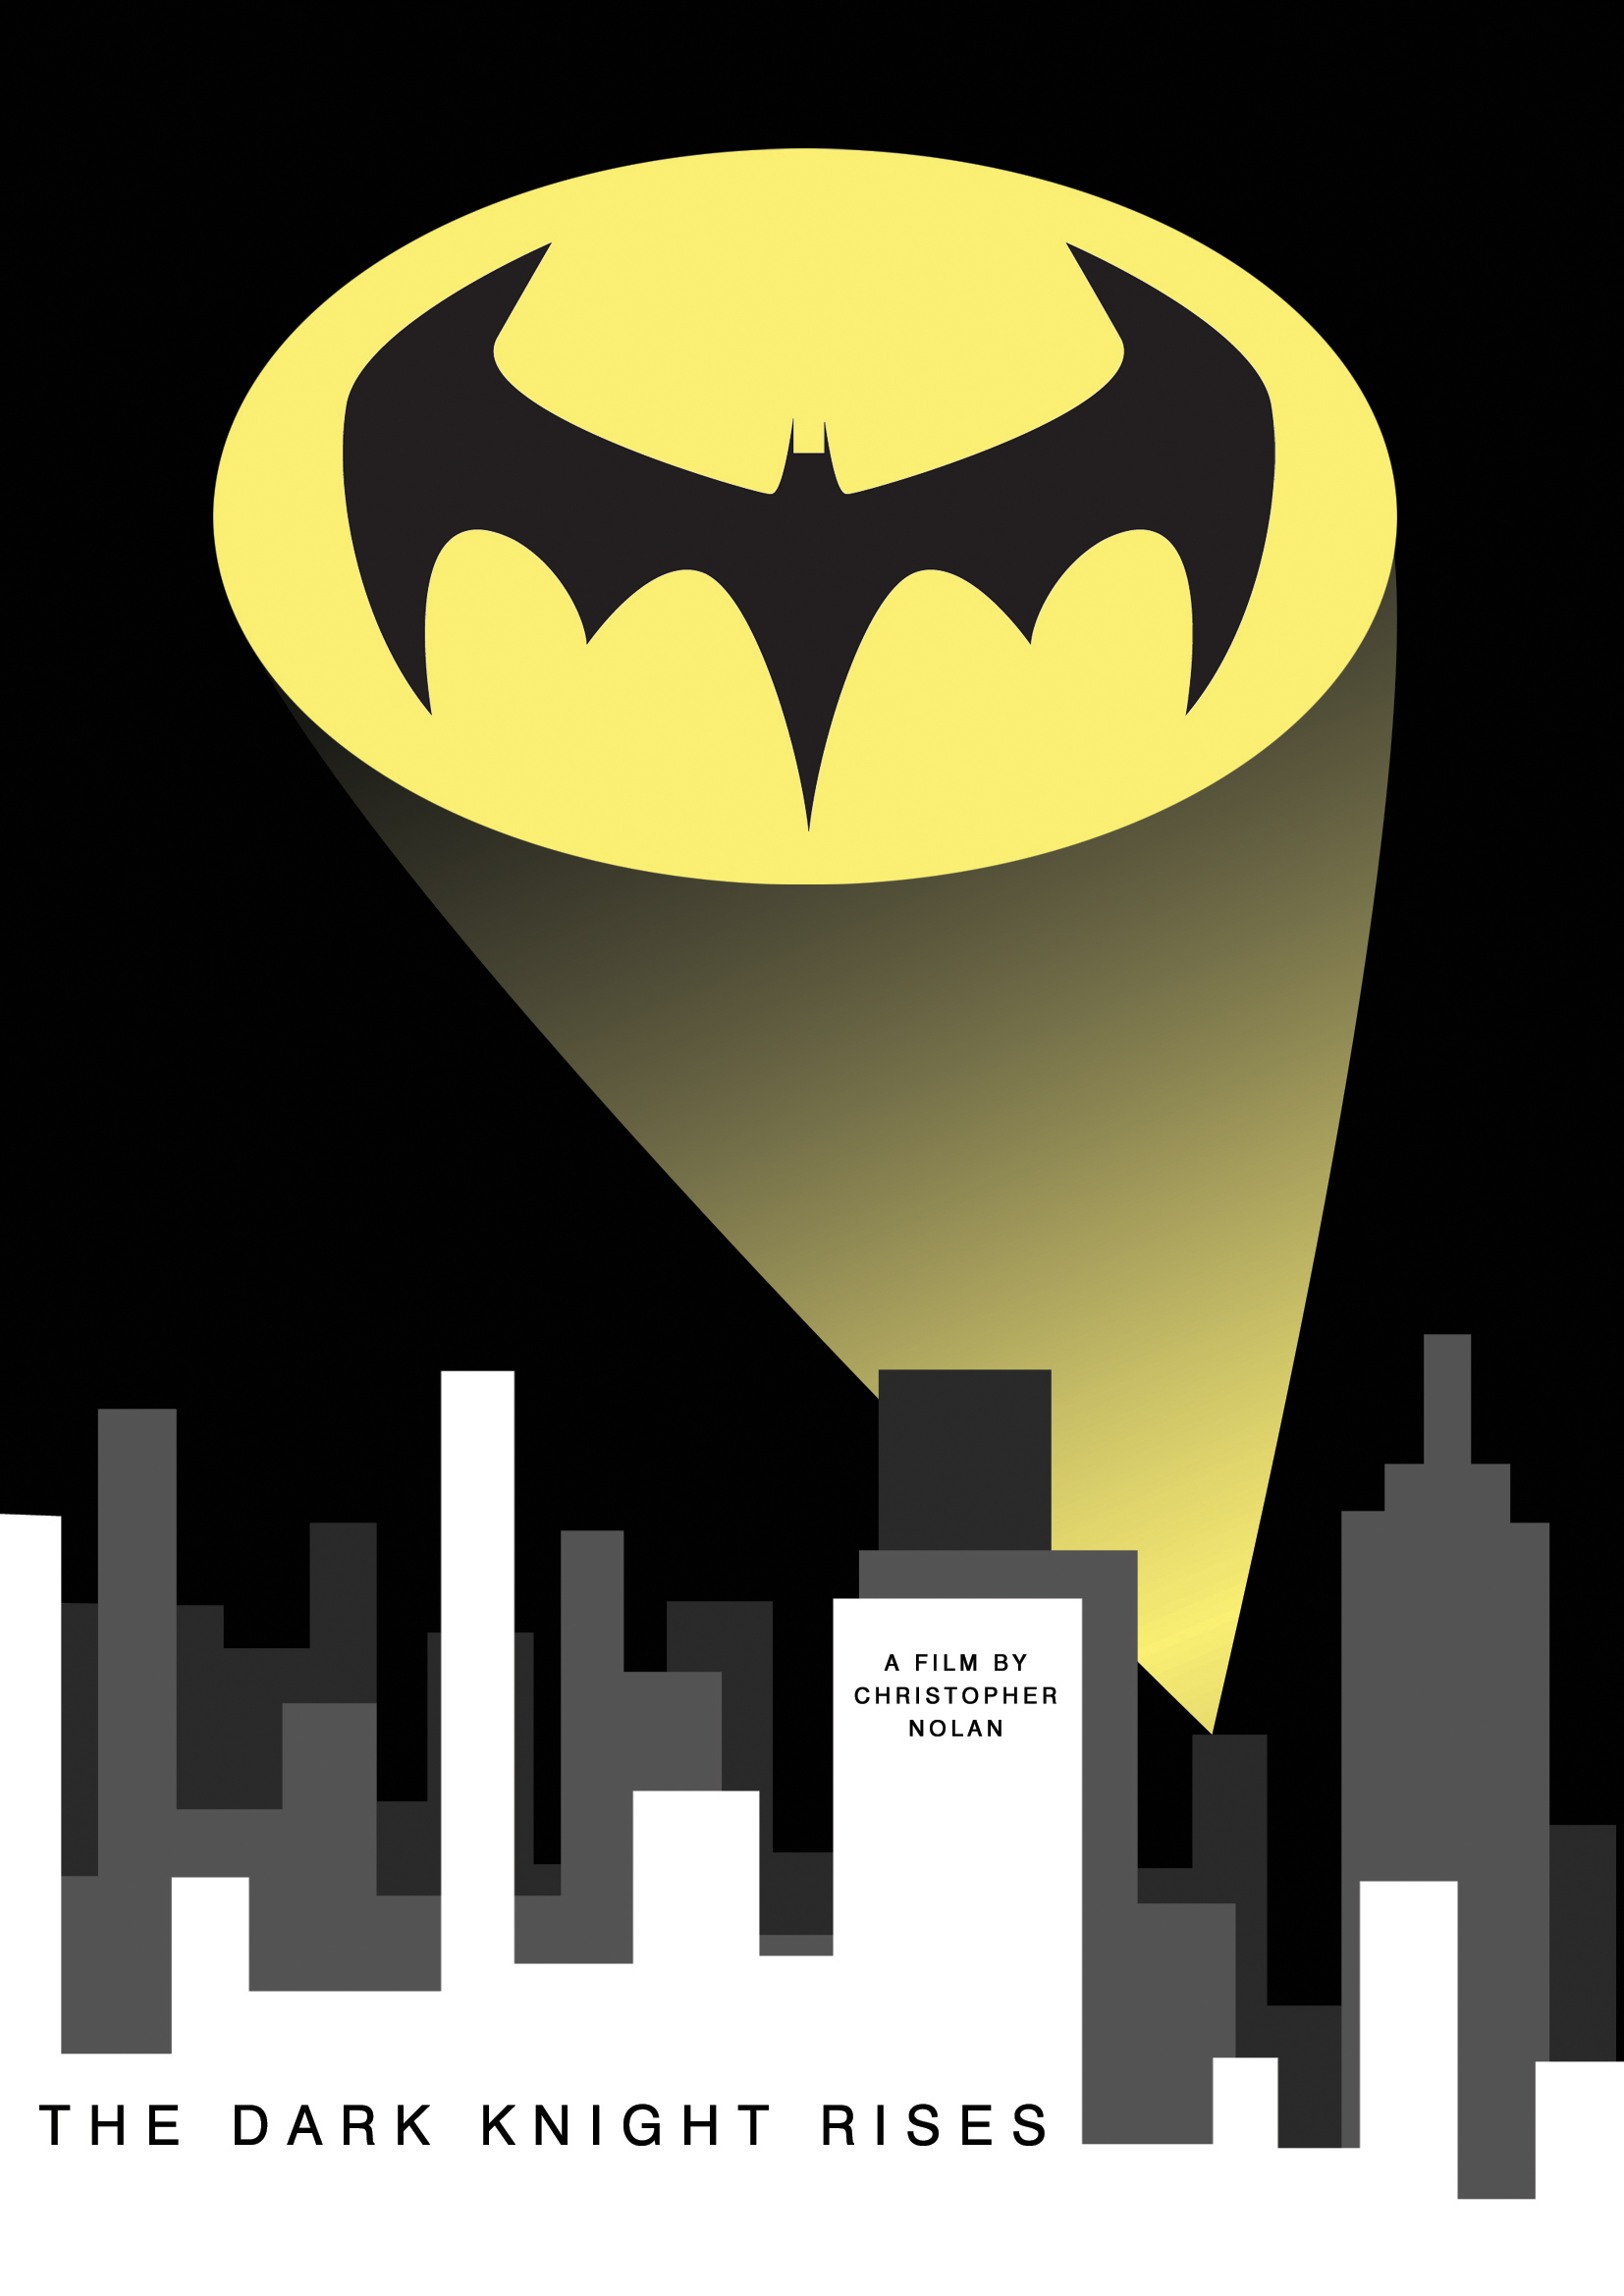 the dark knight rises poster art by